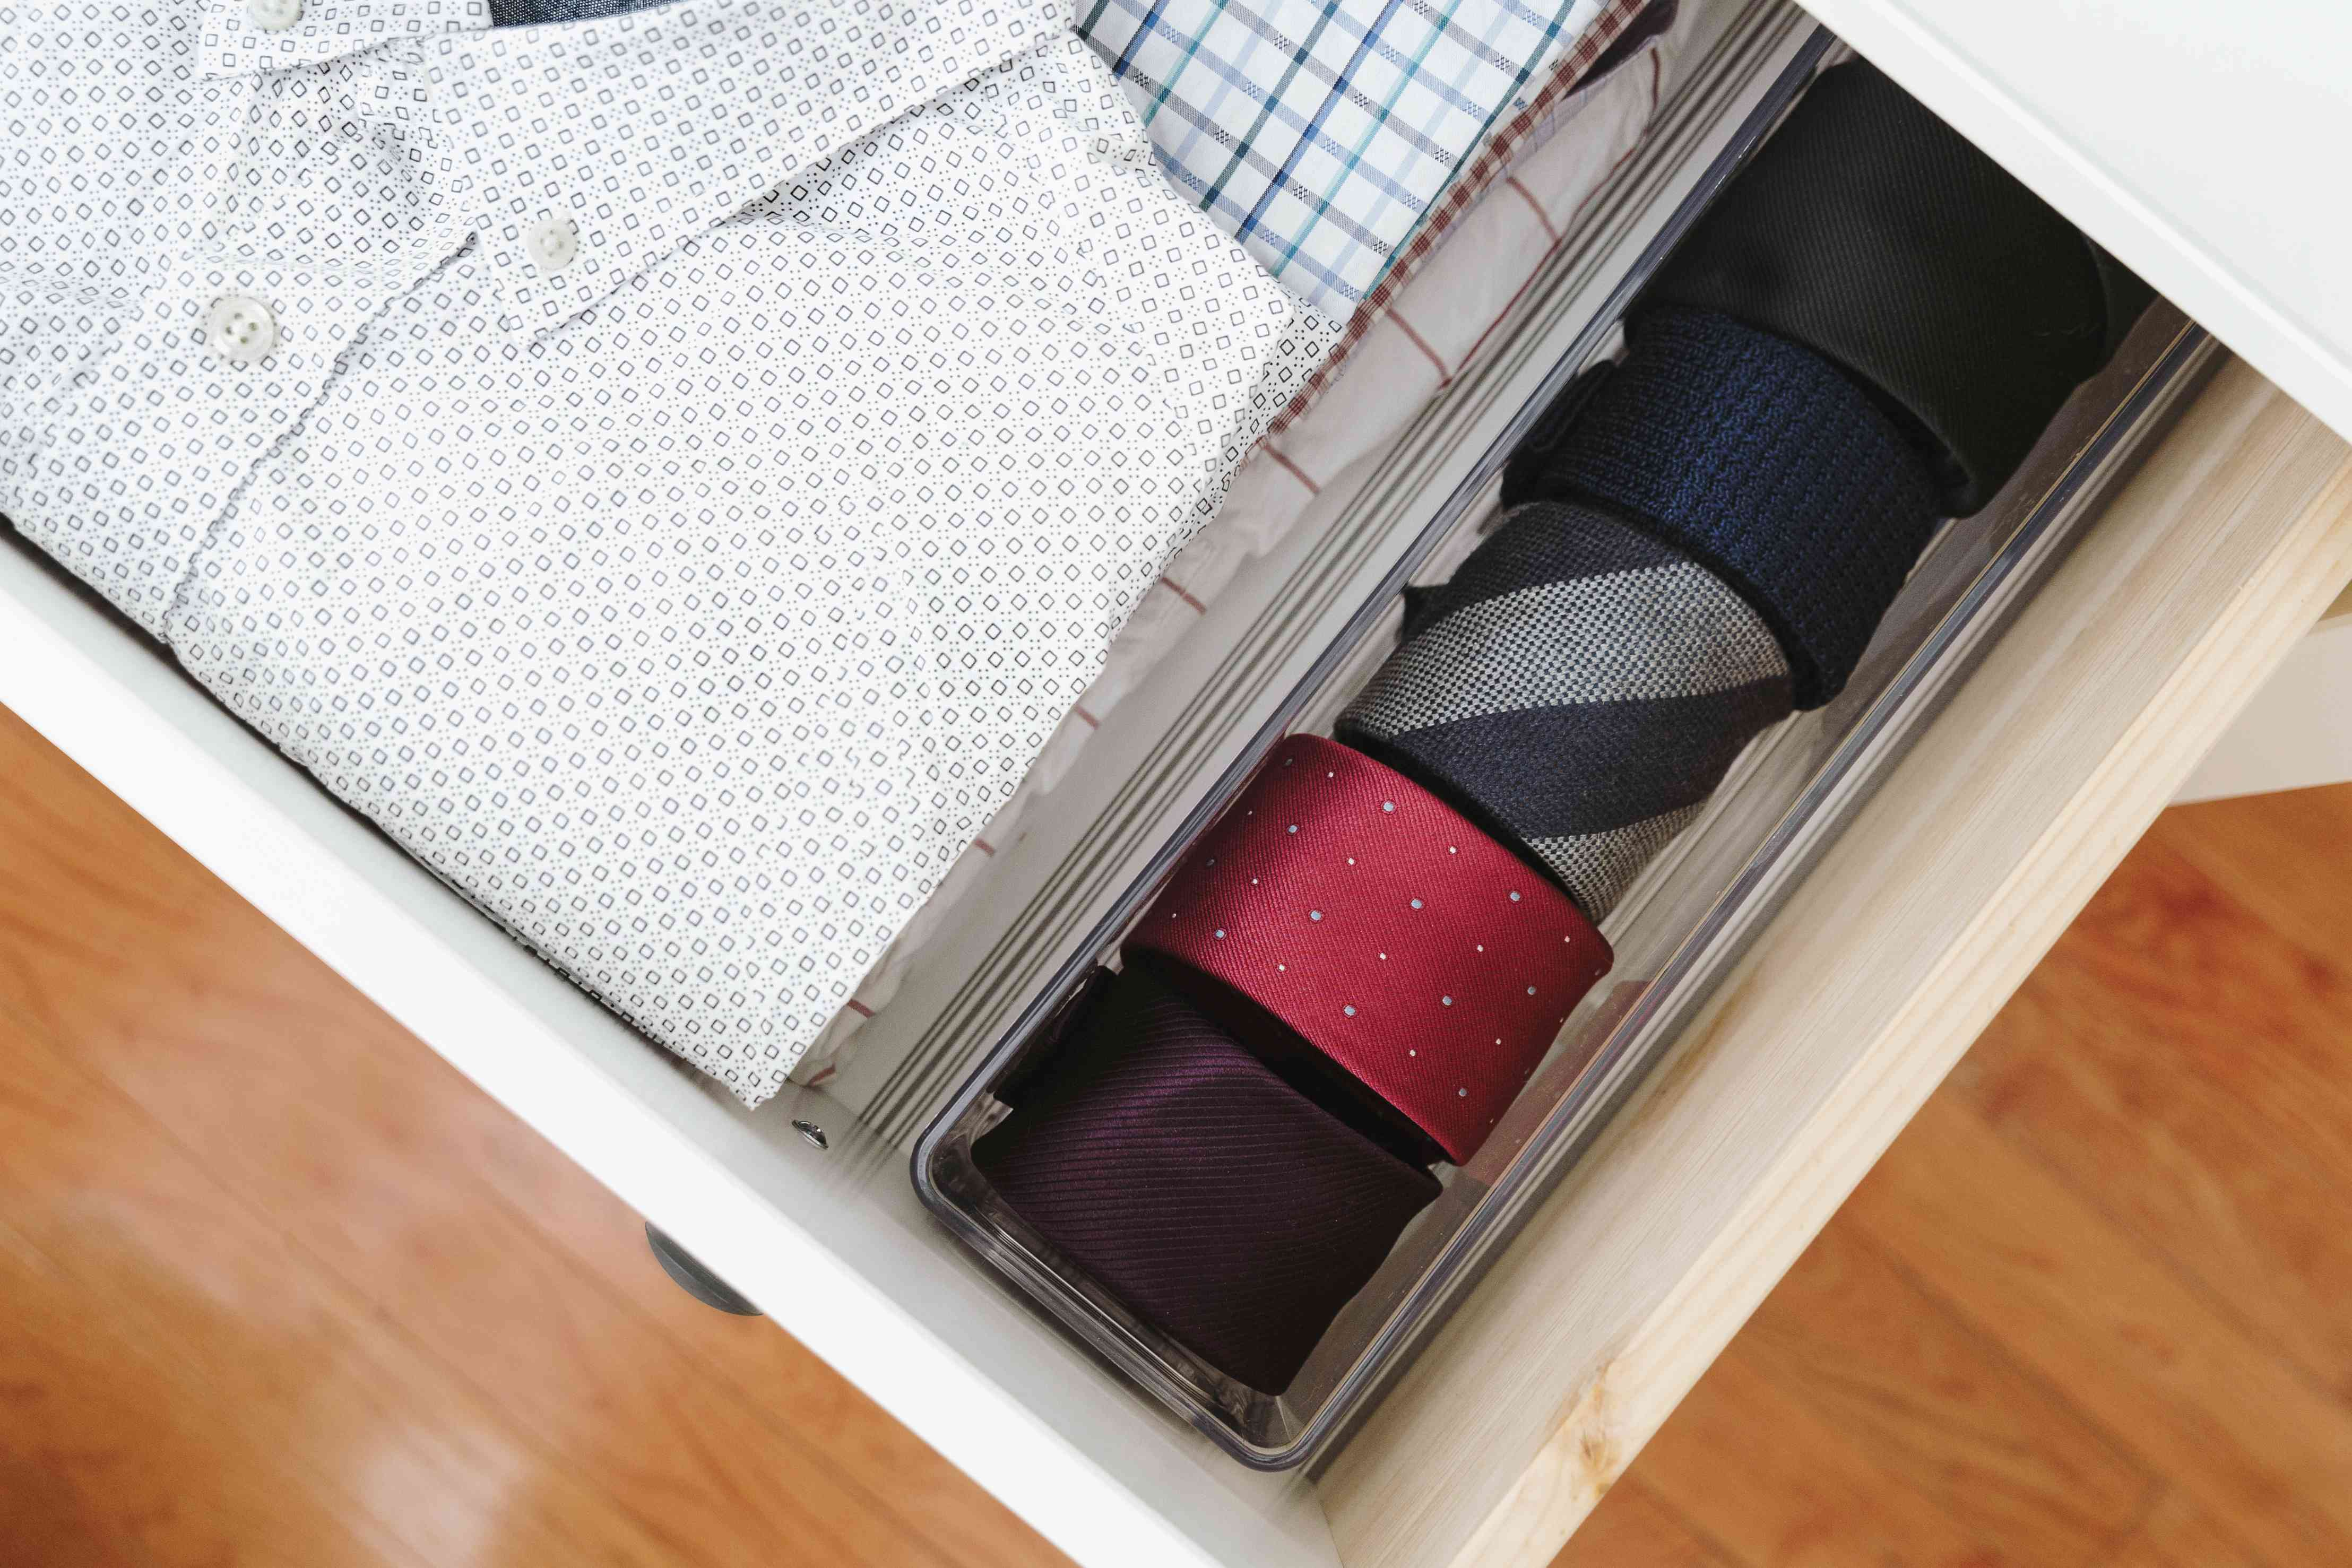 rolling up neck ties in a container